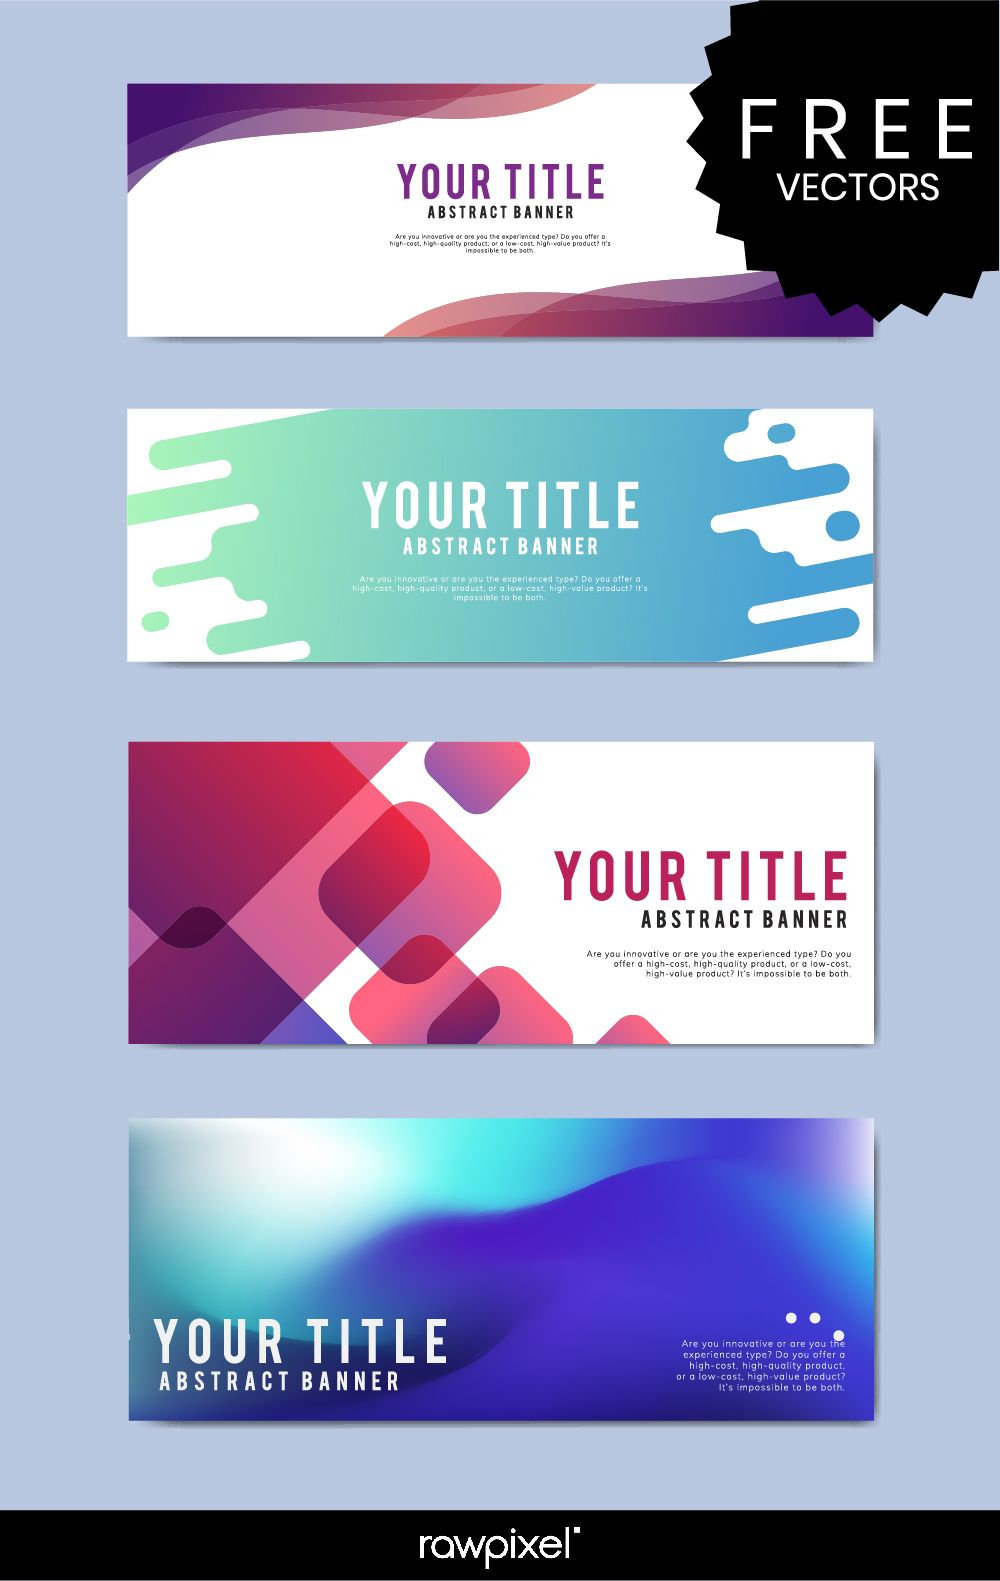 Download Free Modern Business Banner Templates At Rawpixel In Website Banner Templates Free Download